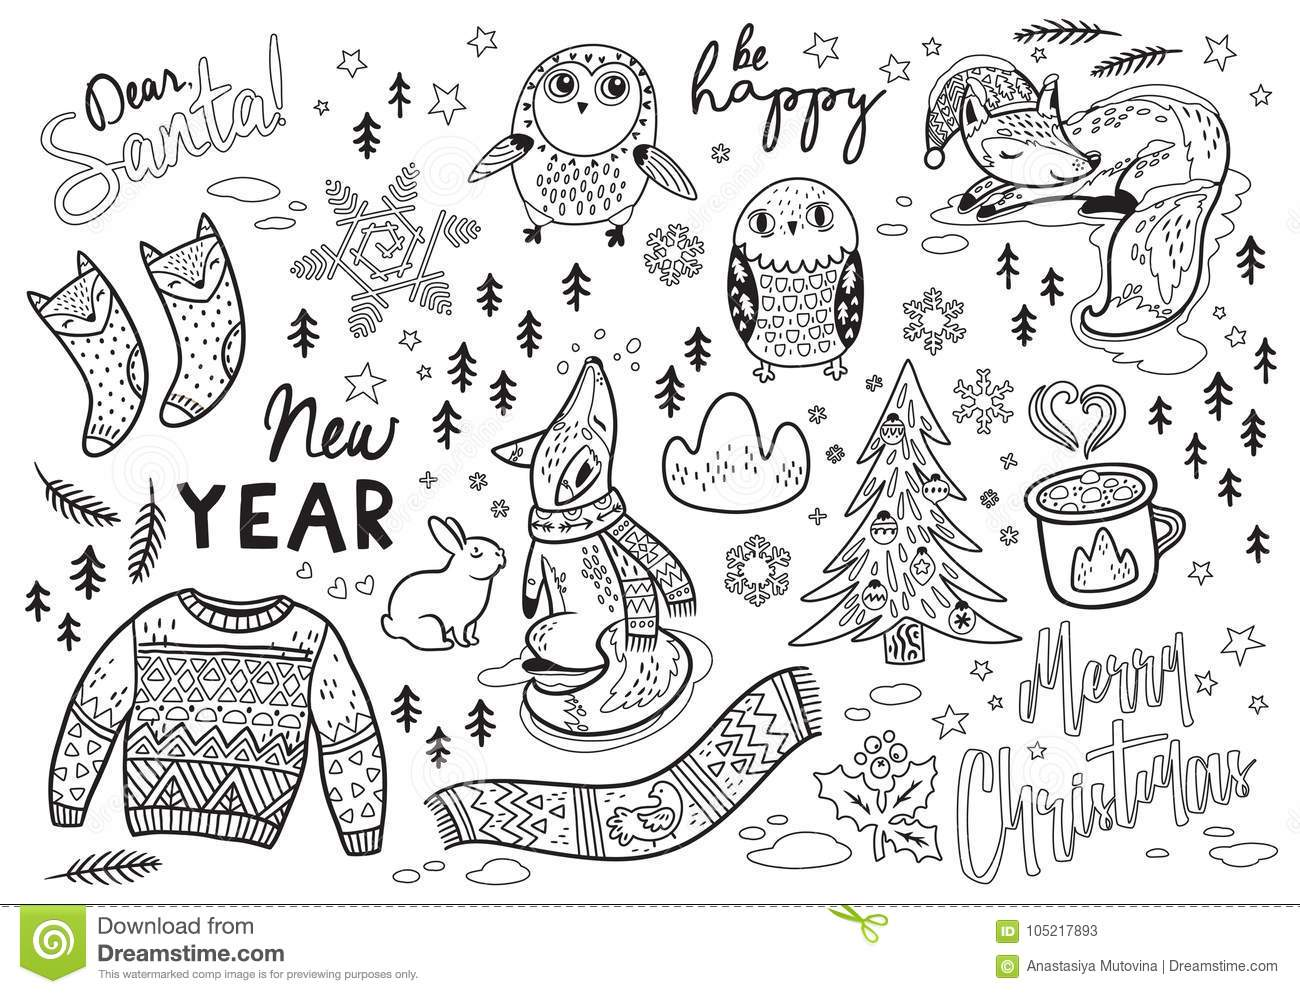 dear santa new year card with winter elements and text in outline lovely fox and owl warm scarf and sweater ideal for coloring print